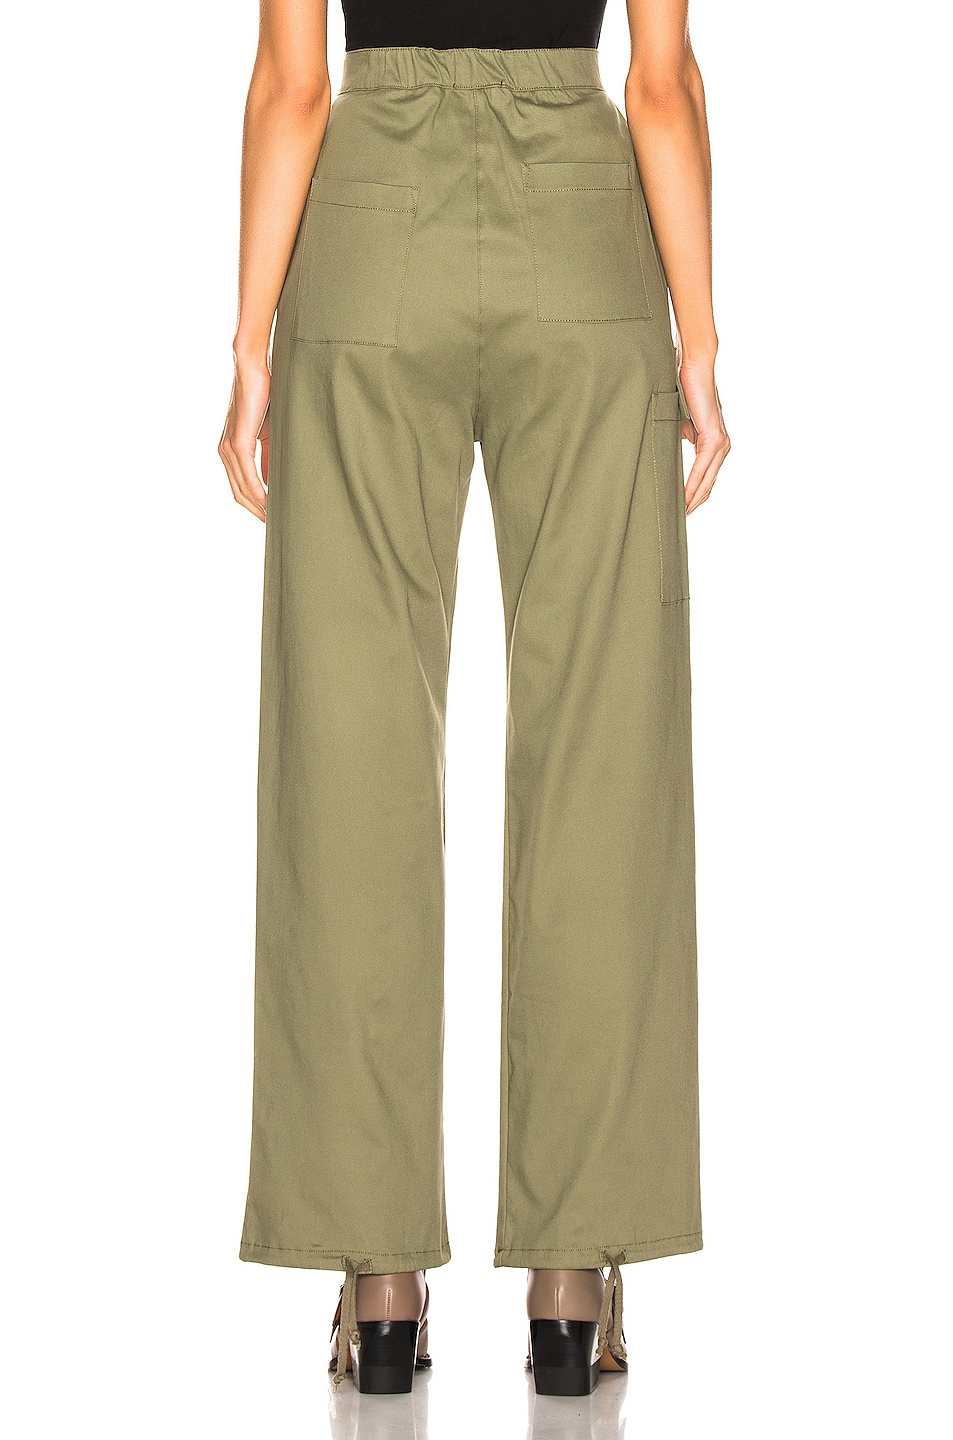 Image 4 of The Range Structured Cargo Pant in Fatigue